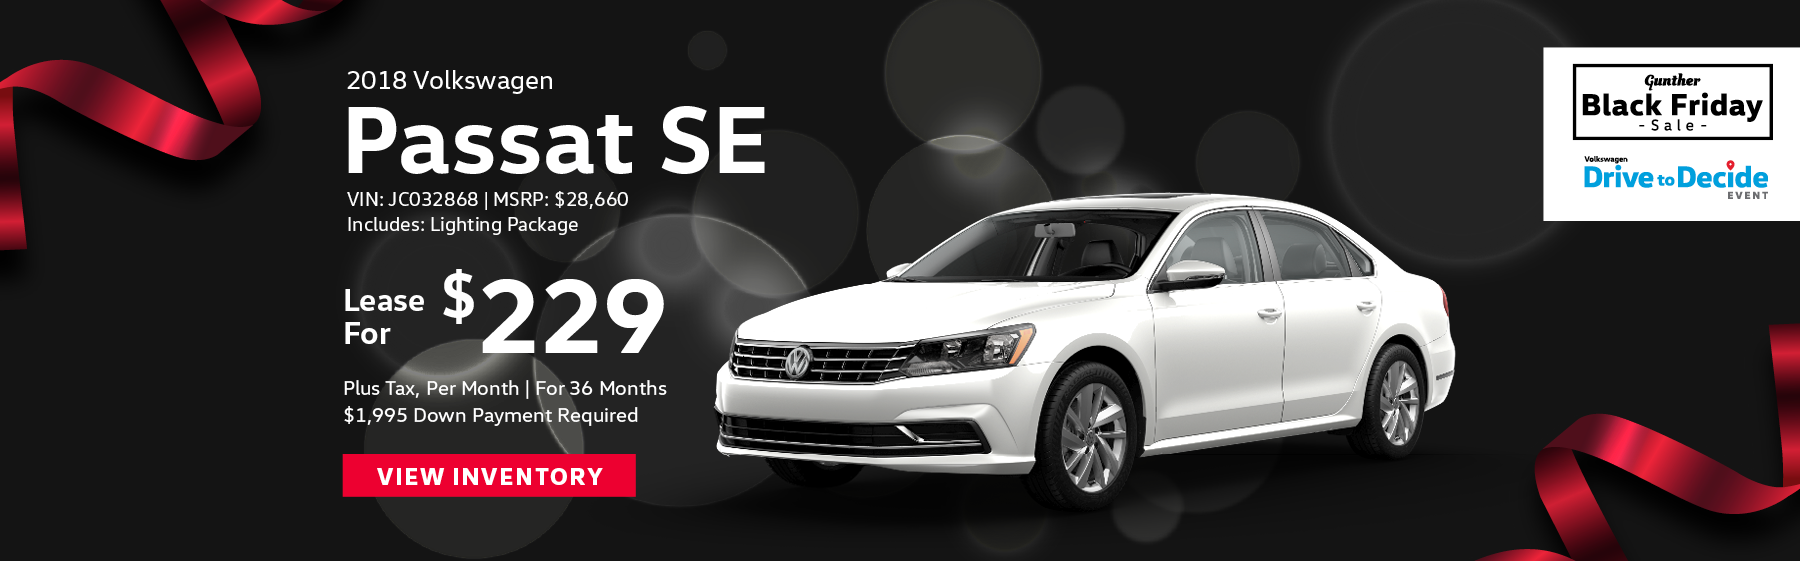 Lease the 2018 Volkswagen Passat SE for $229 per month, plus tax for 36 months.